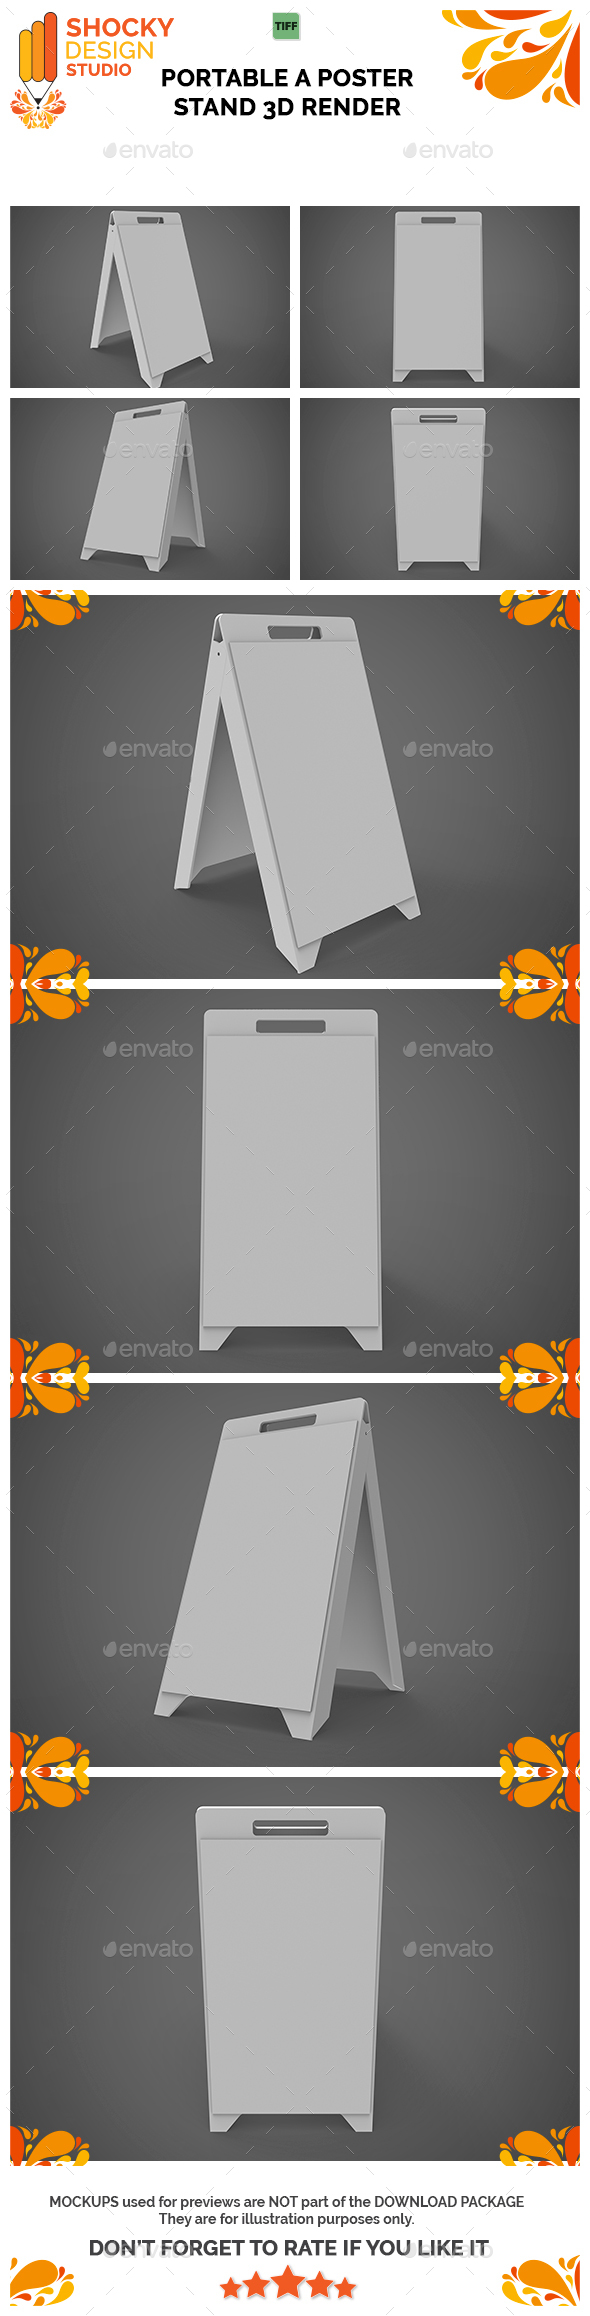 Portable A Poster Stand 3D Render - Miscellaneous 3D Renders